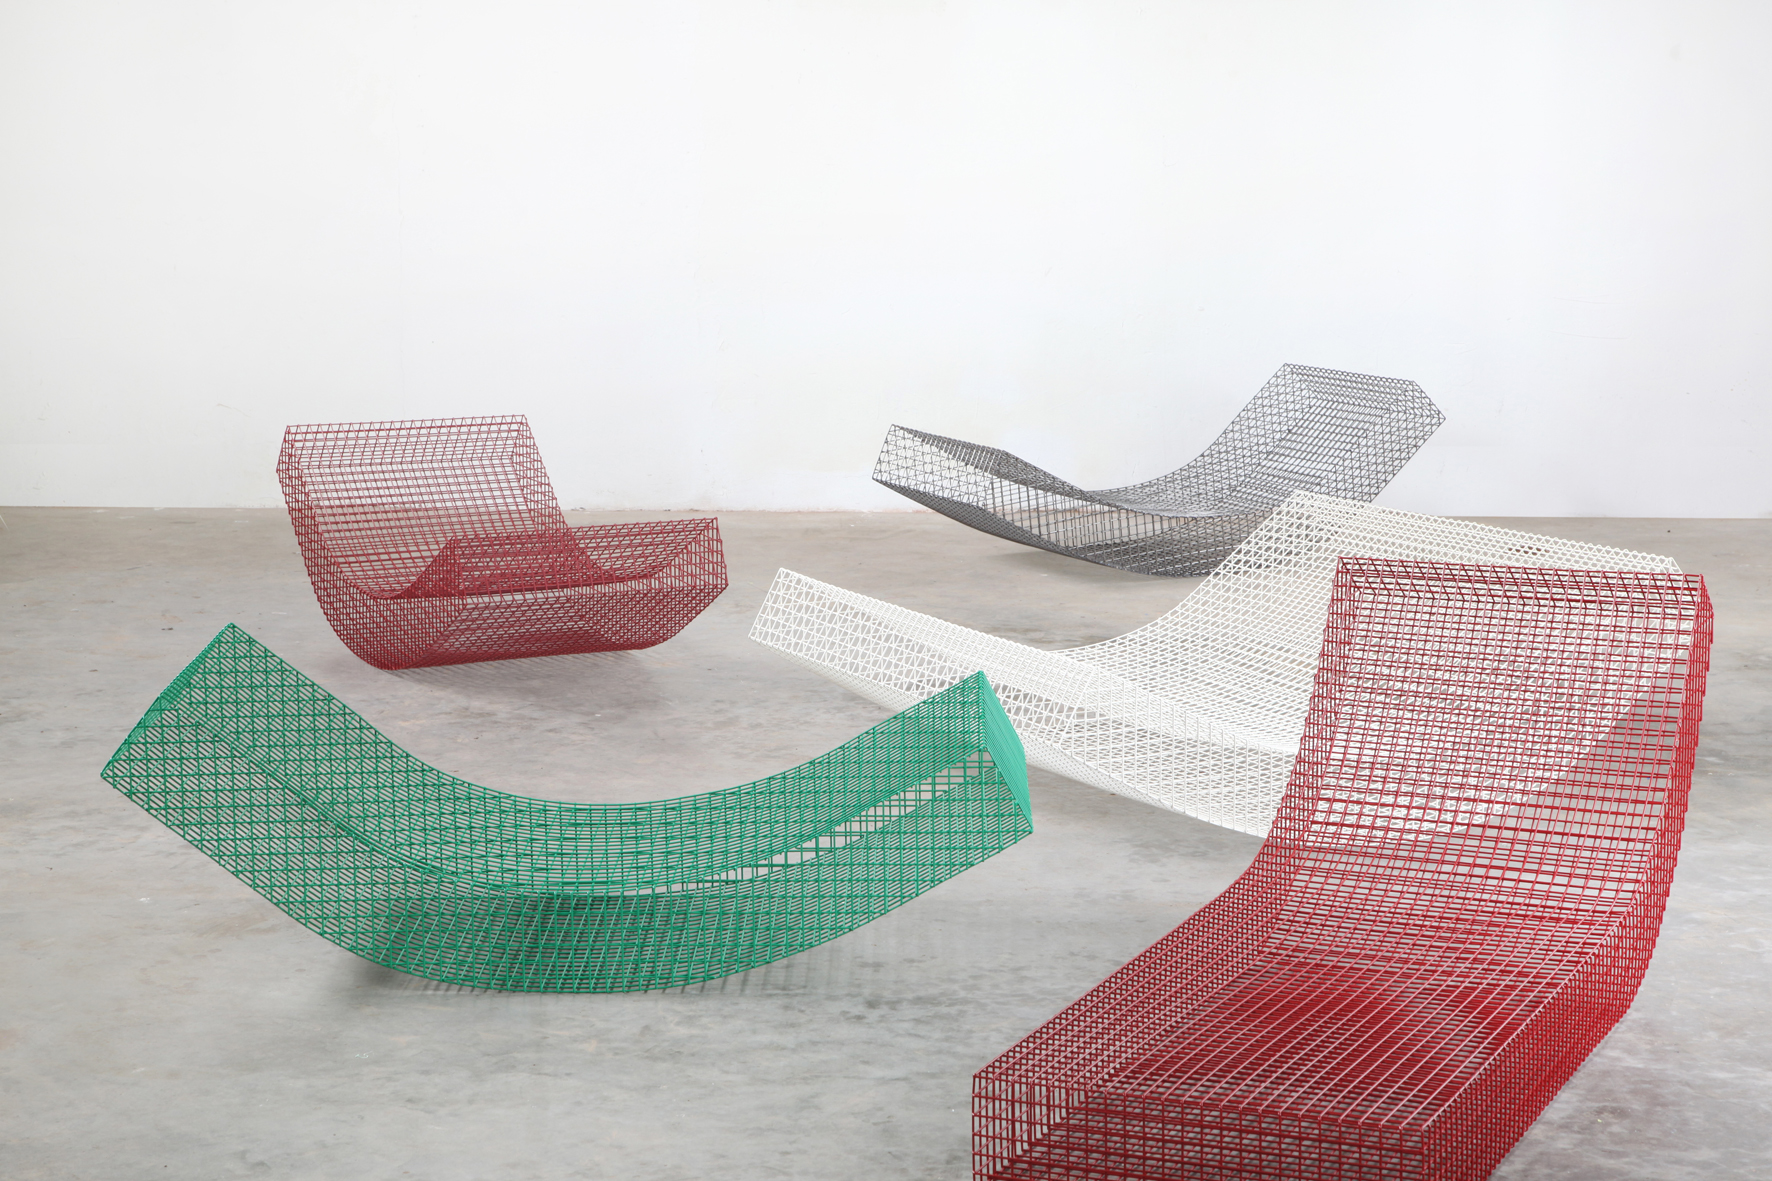 Muller van Severen's highly transparent 'Wire S' chaise was on show at  Bare Minimum,  an exhibition at Viaduct's showroom in Farringdon. The chair is made from powder coated stainless steel and was inspired by a curled mattress laying on the floor.